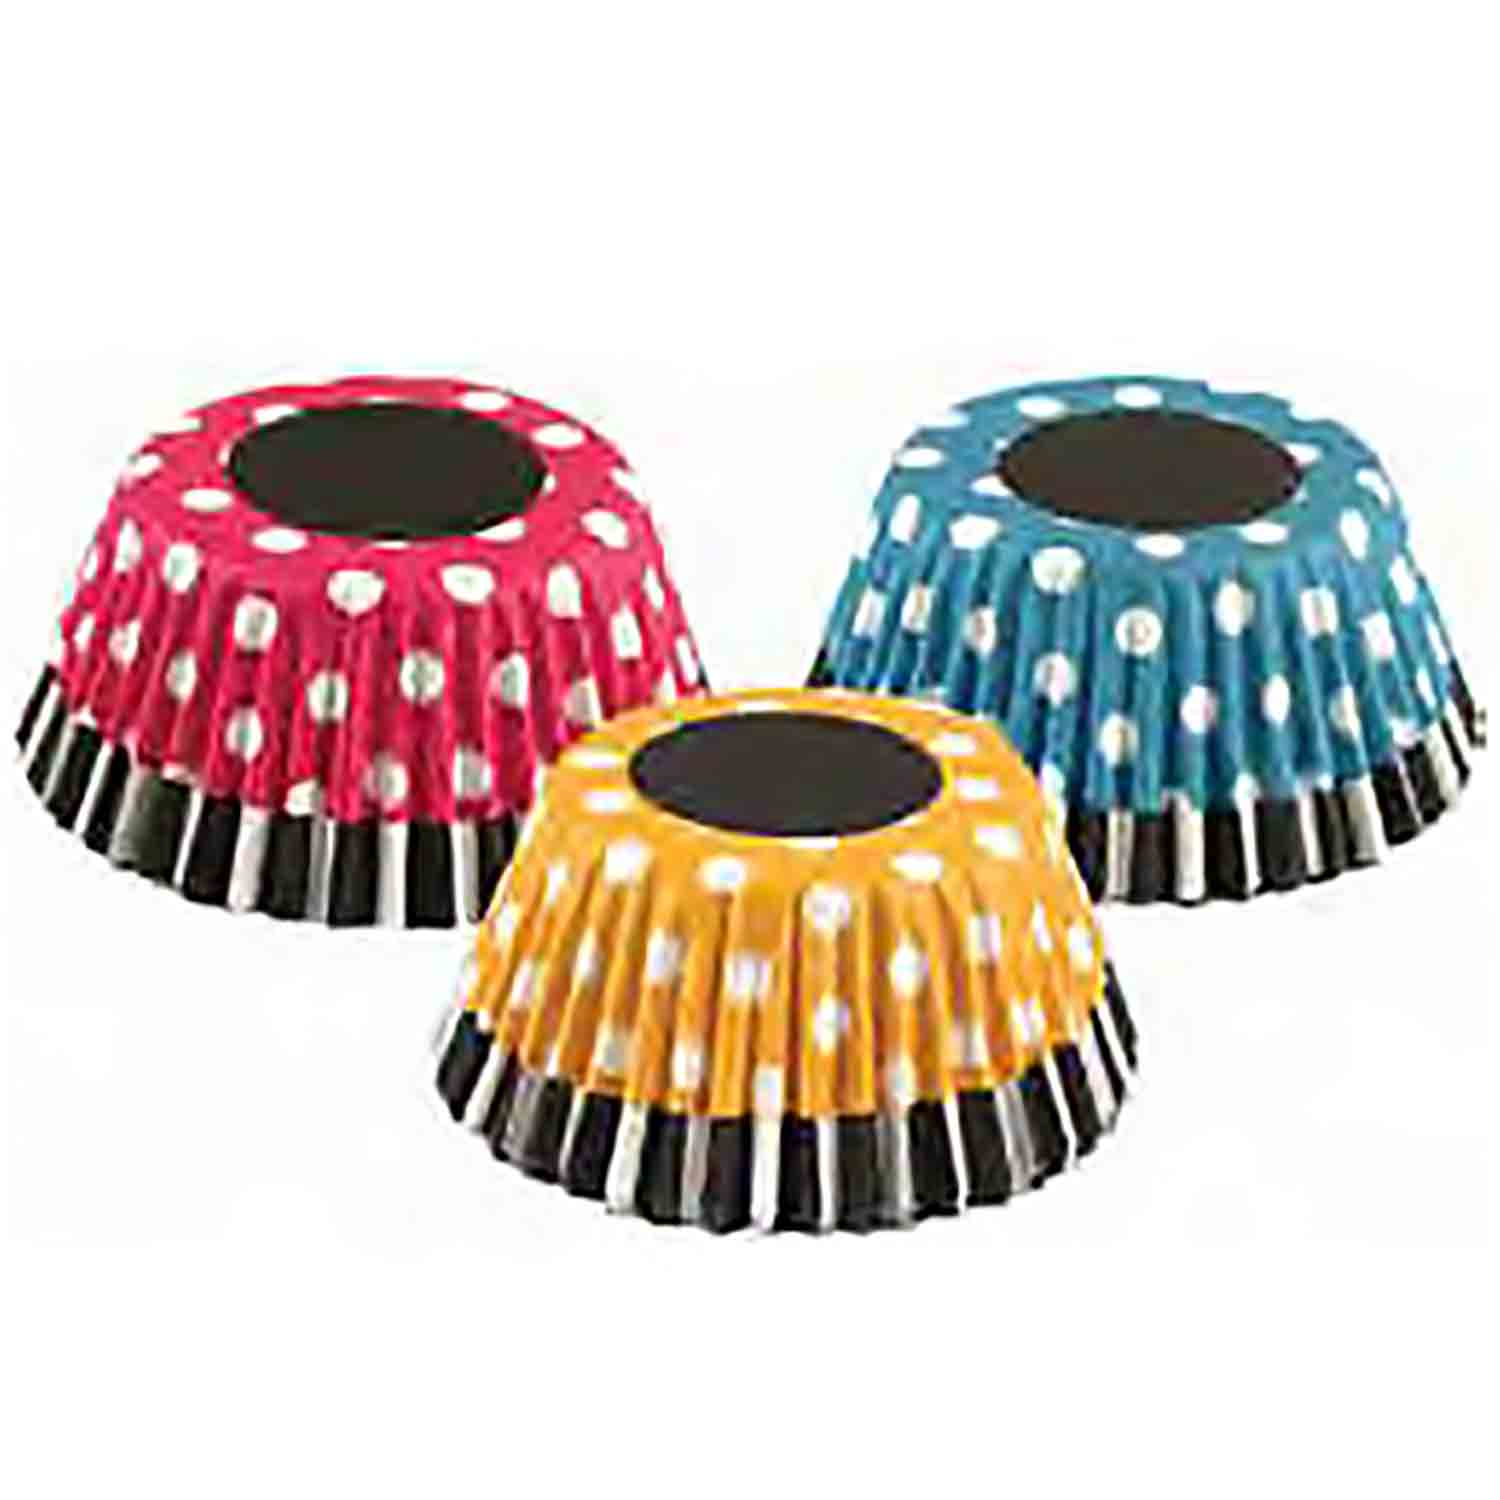 Retro Polka Dots Standard Baking Cups